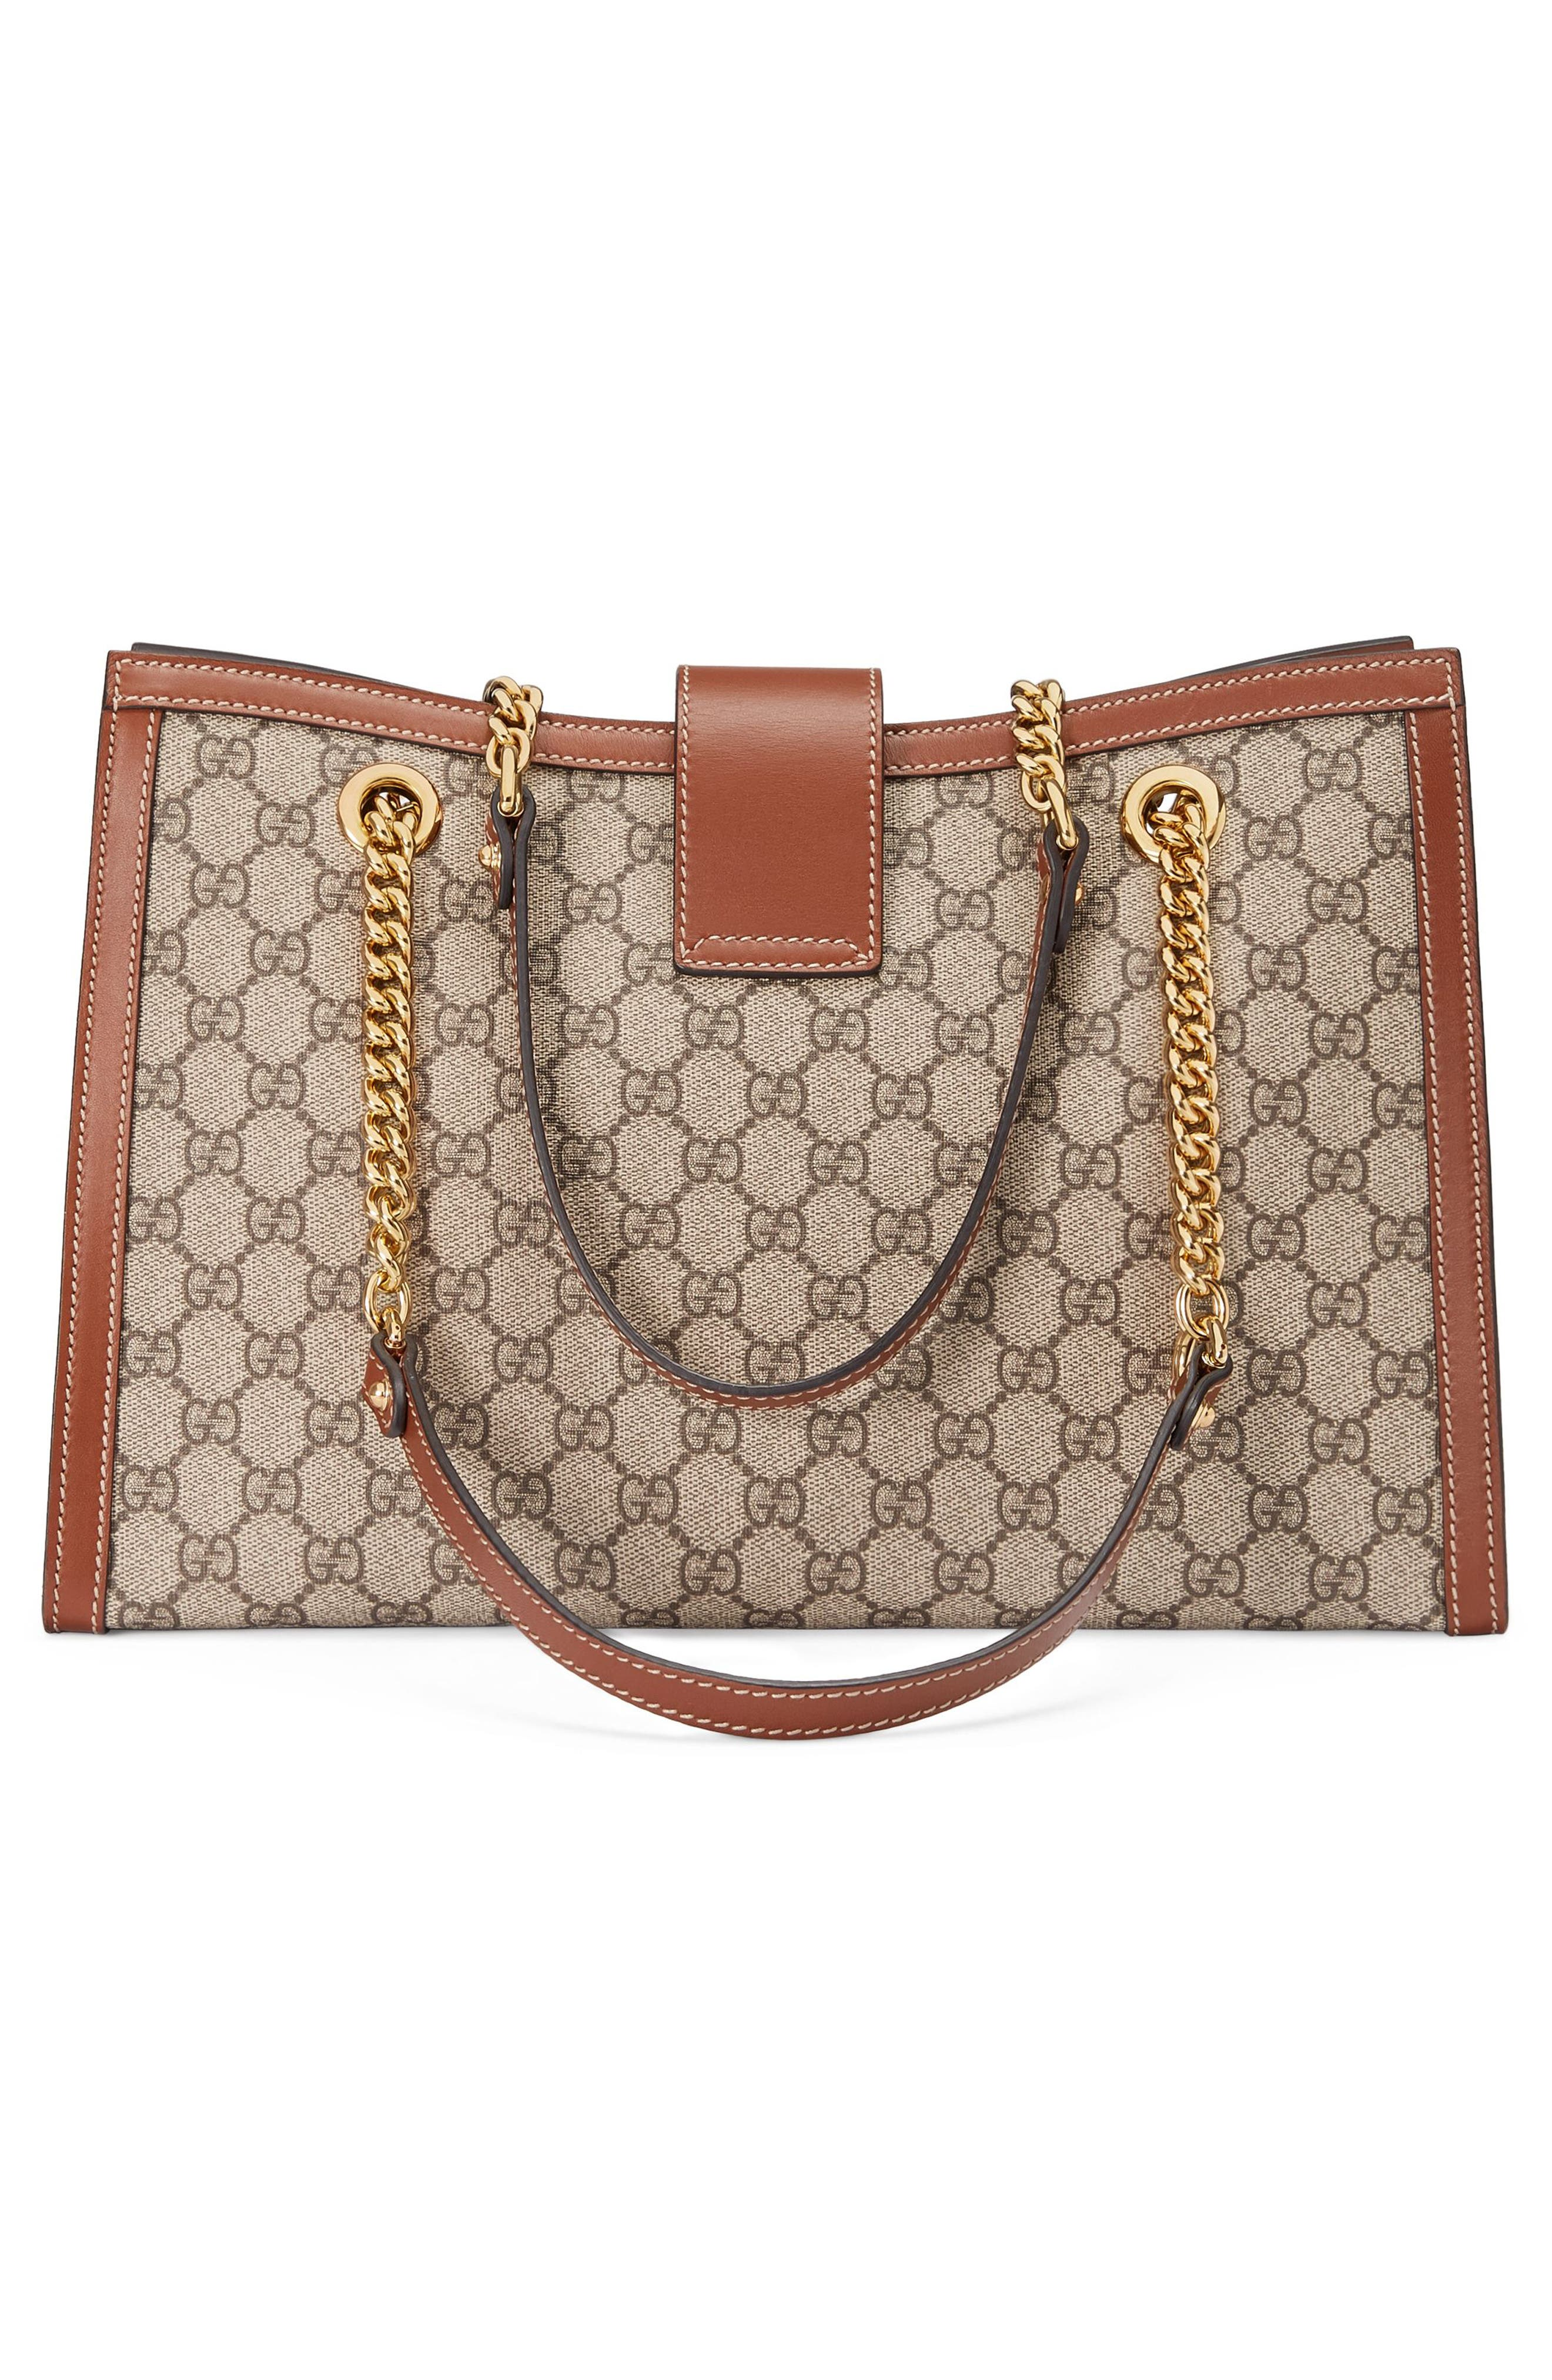 a87e54003 Gucci Tote Bags for Women: Leather, Coated Canvas, & Neoprene | Nordstrom